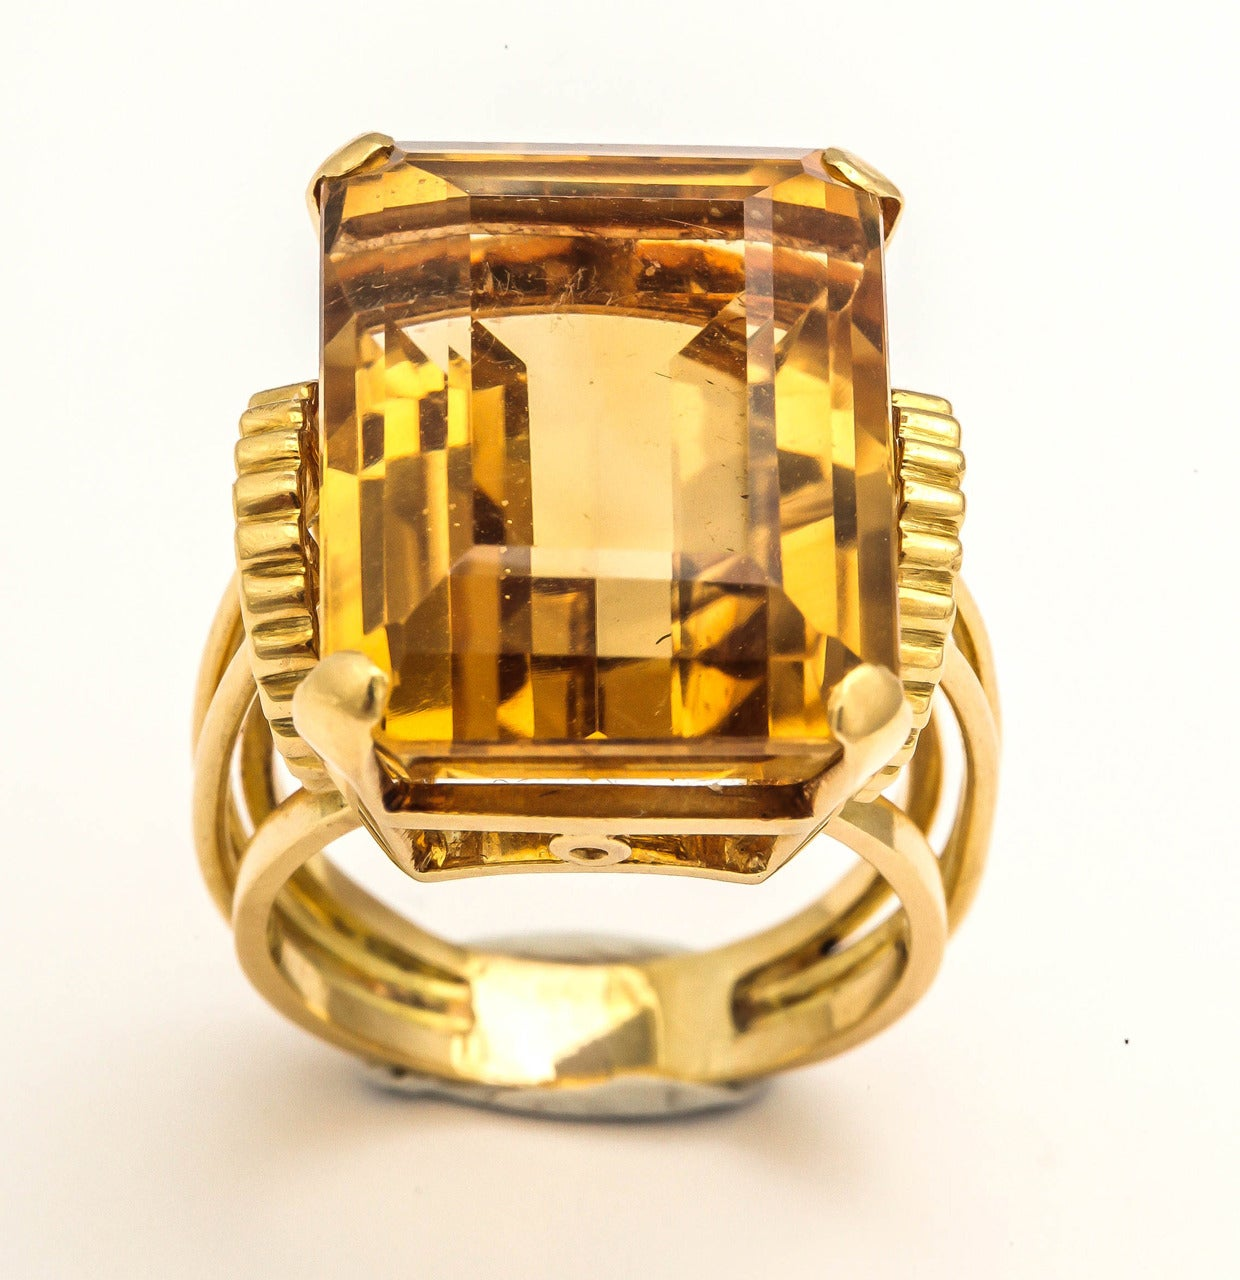 Women's English Retro Citrine 18k Gold Cocktail Ring, 1950s For Sale